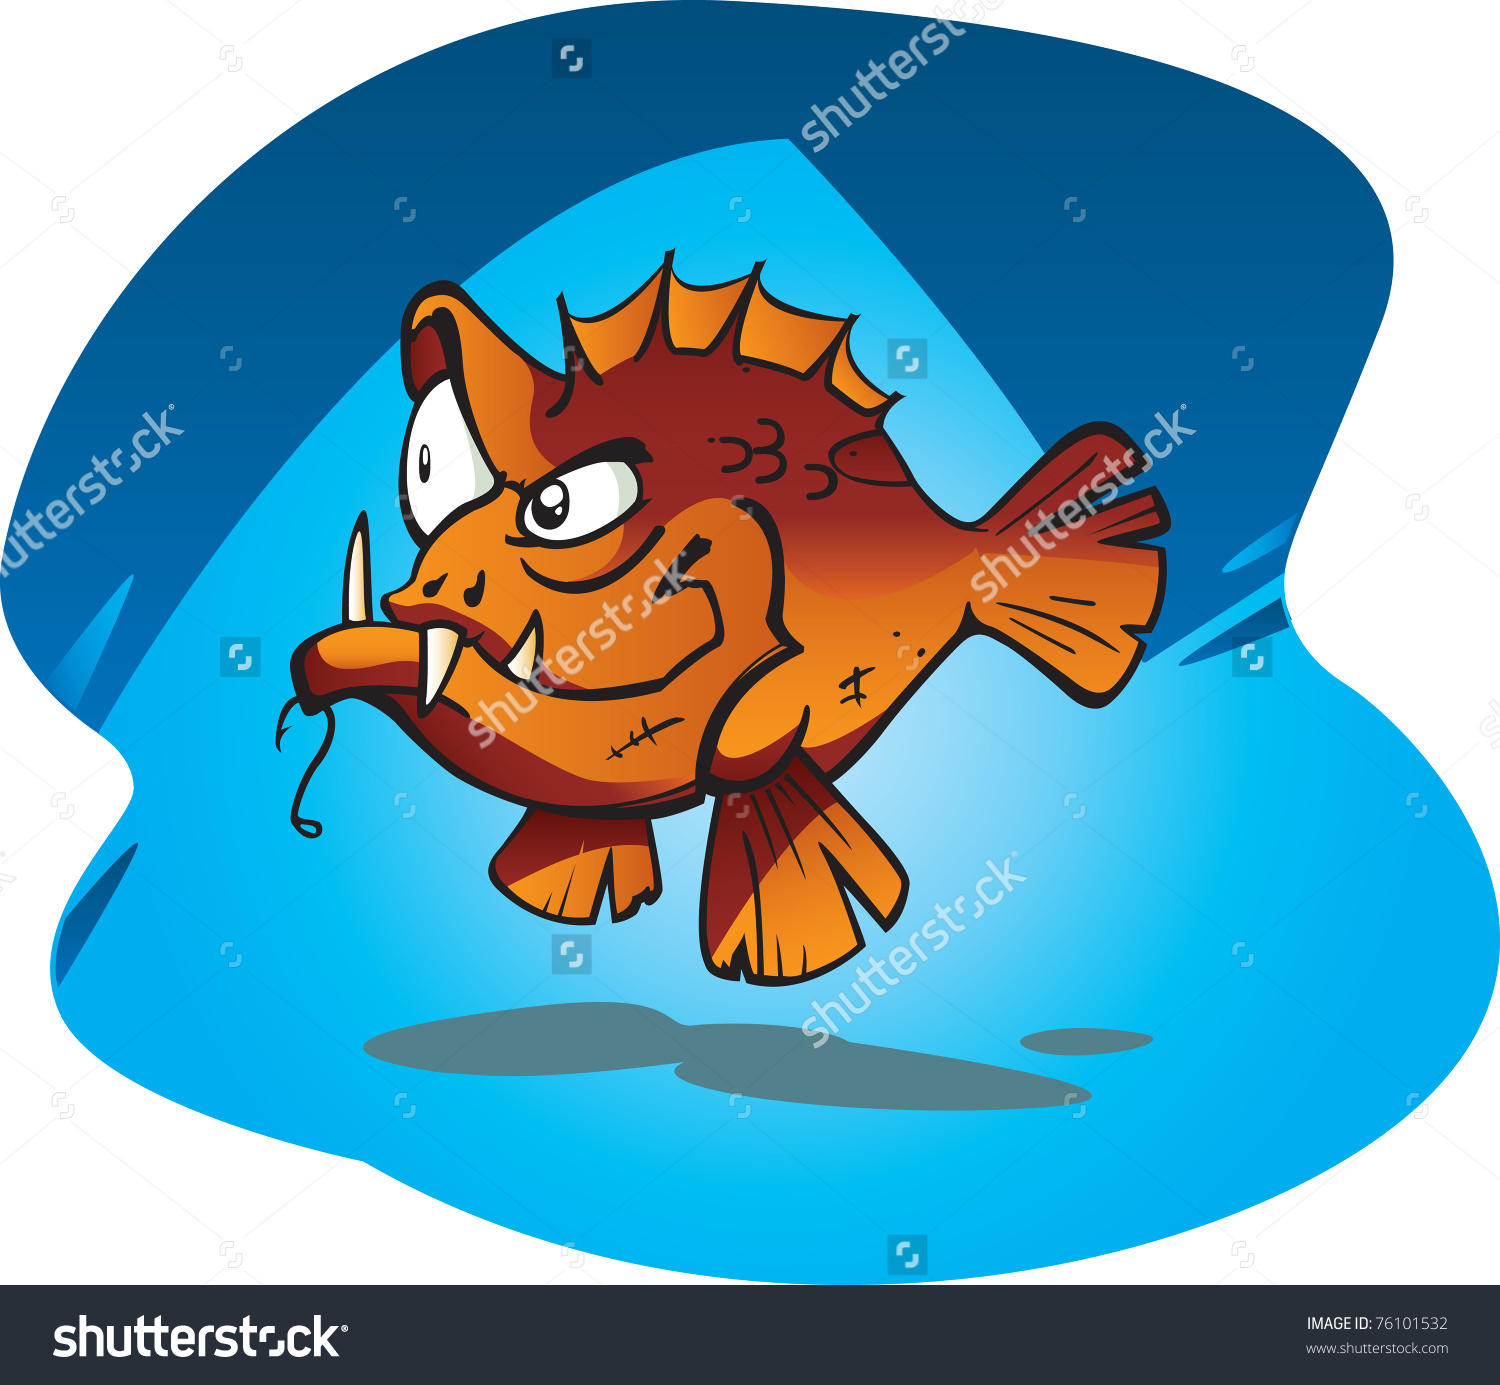 Barrier Reef clipart #1, Download drawings